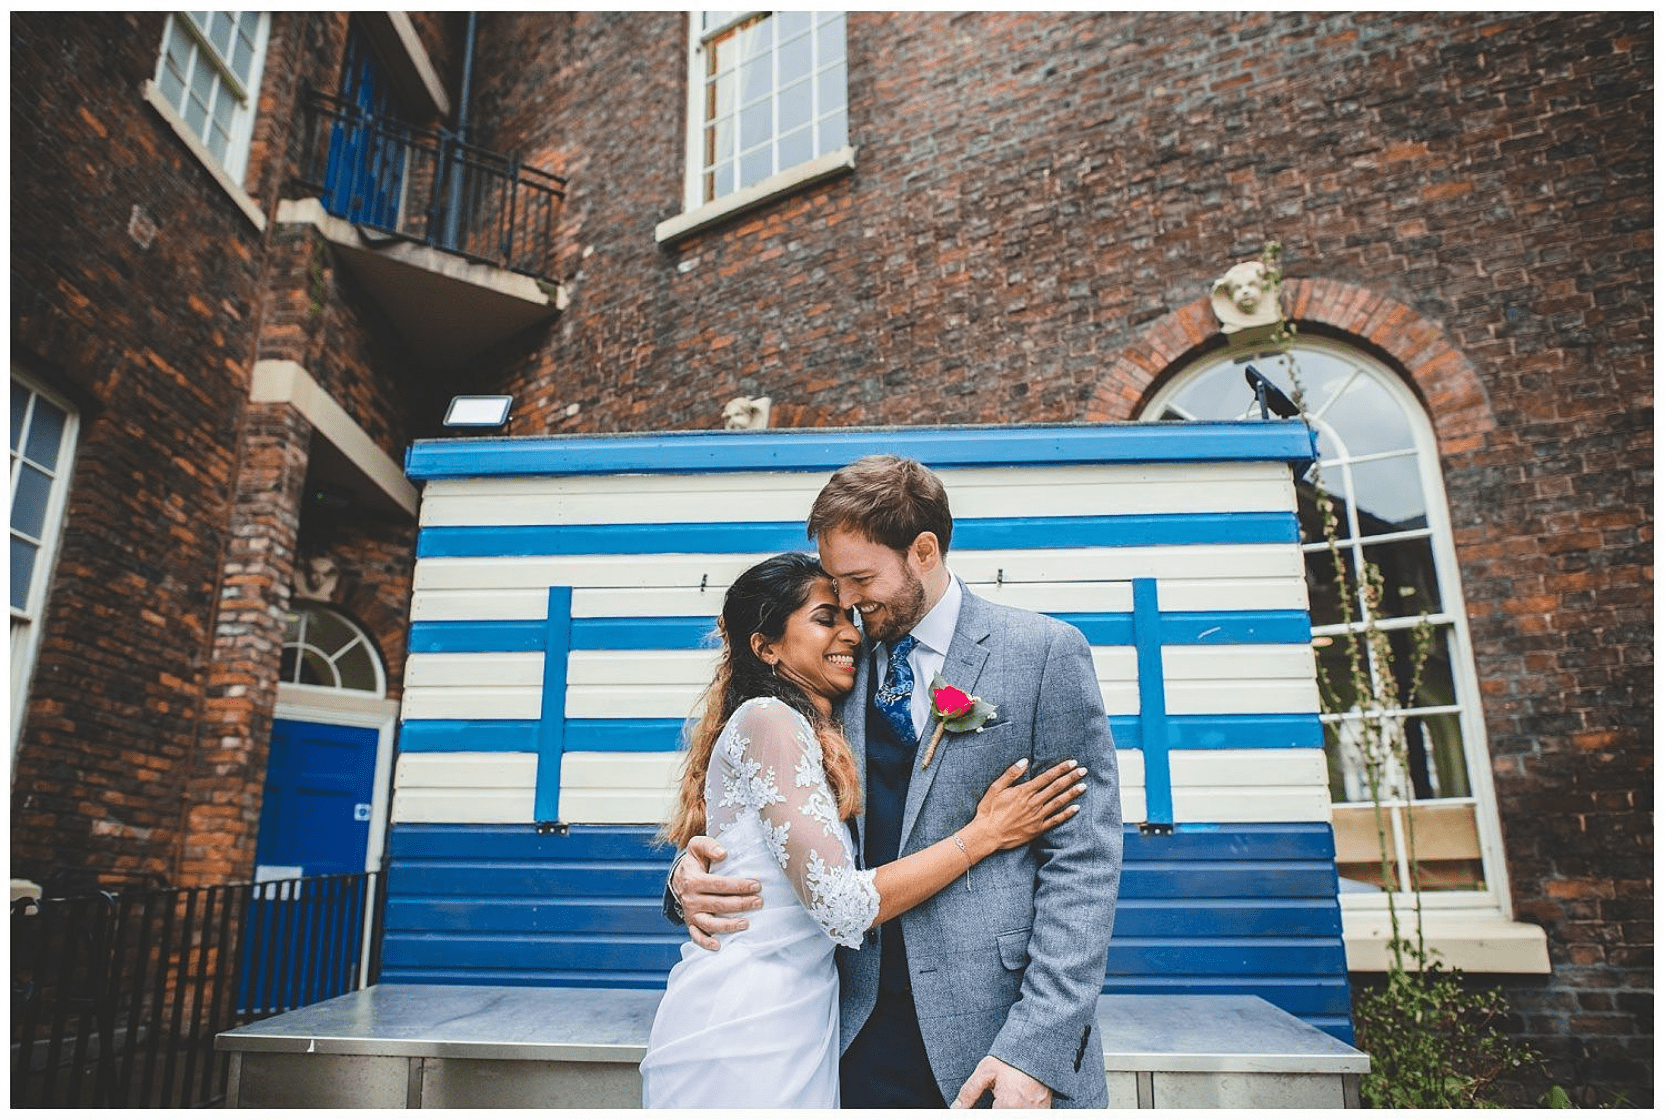 Emma Hiller Photography at Bluecoat Liverpool wedding Bride and Groom in courtyard